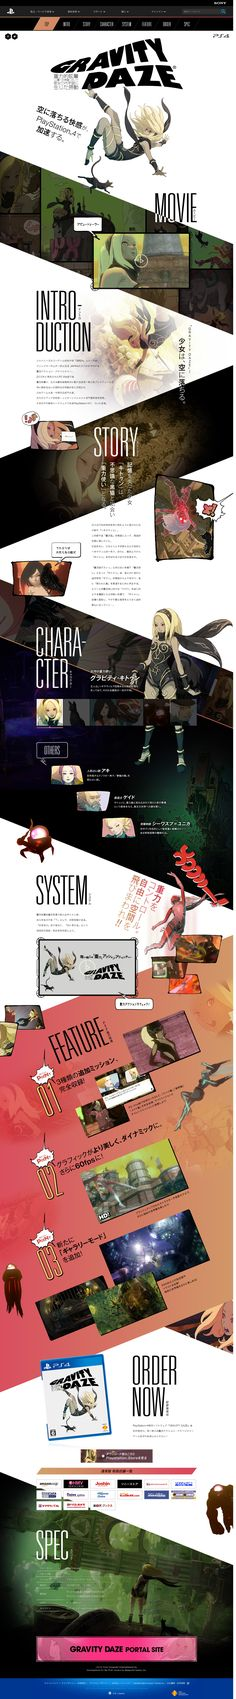 Sony Playstation Japan Gravity Daze.